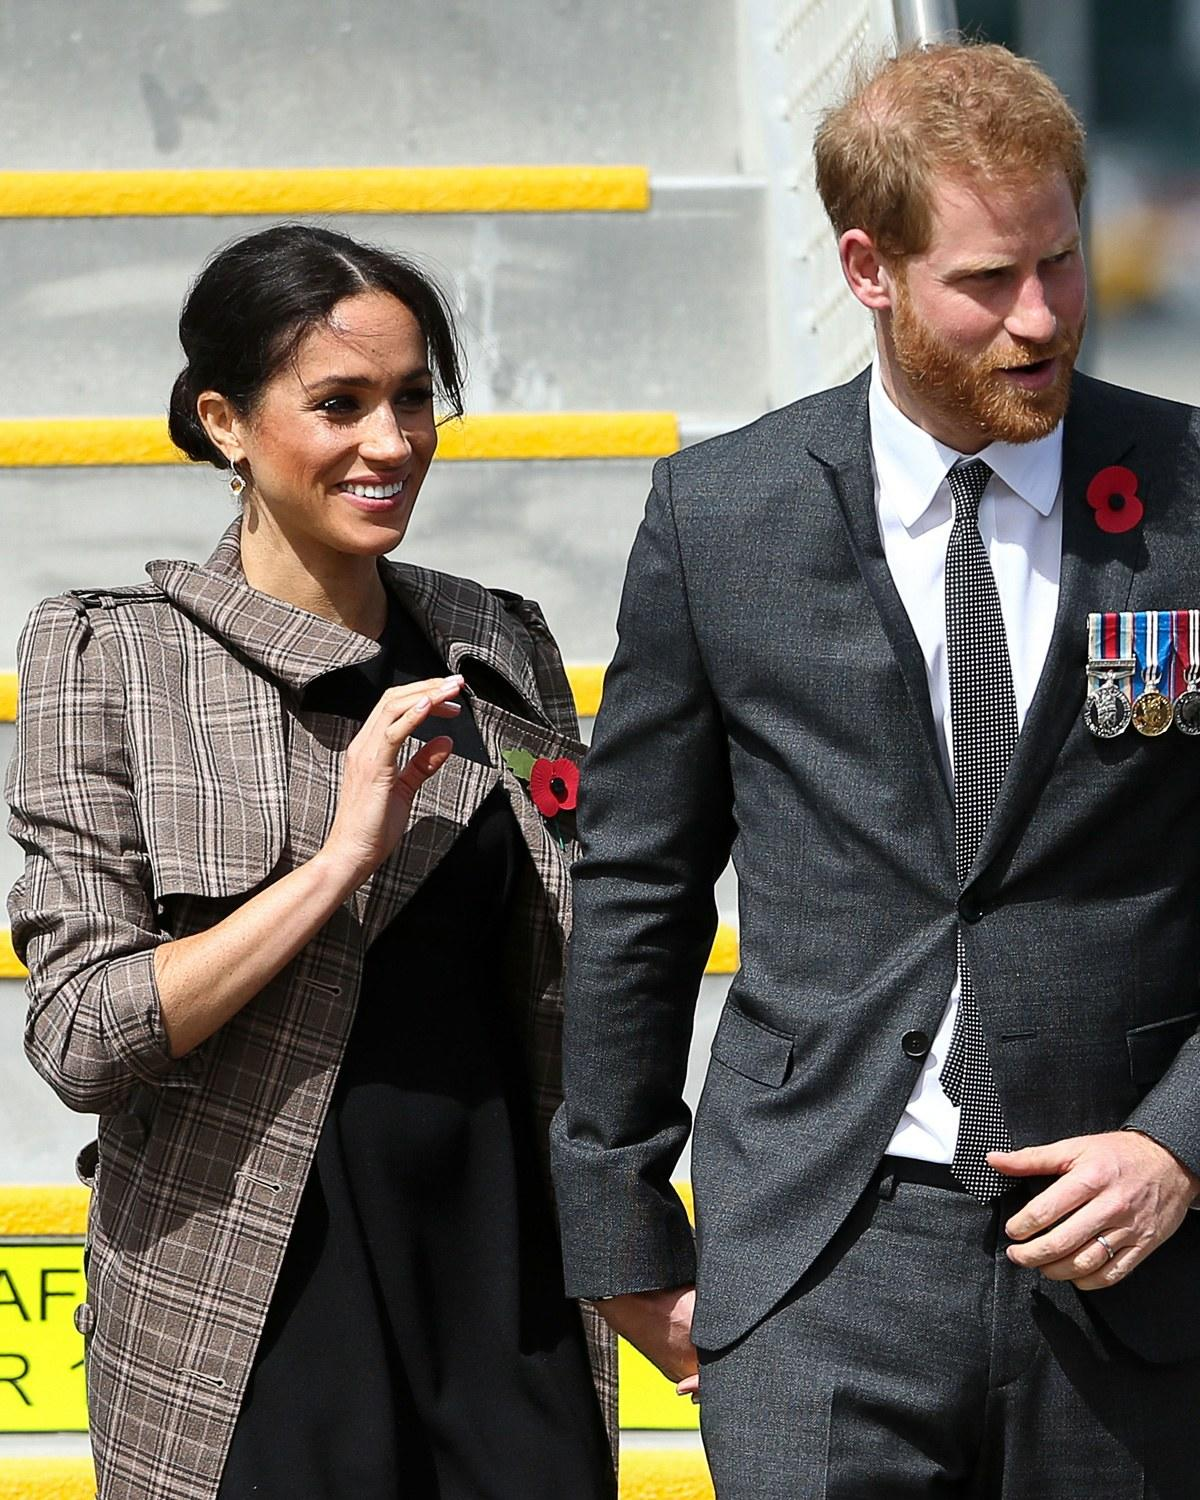 379891ffcede3 Meghan Markle Wore a $60 ASOS Maternity Dress for Her Latest ...